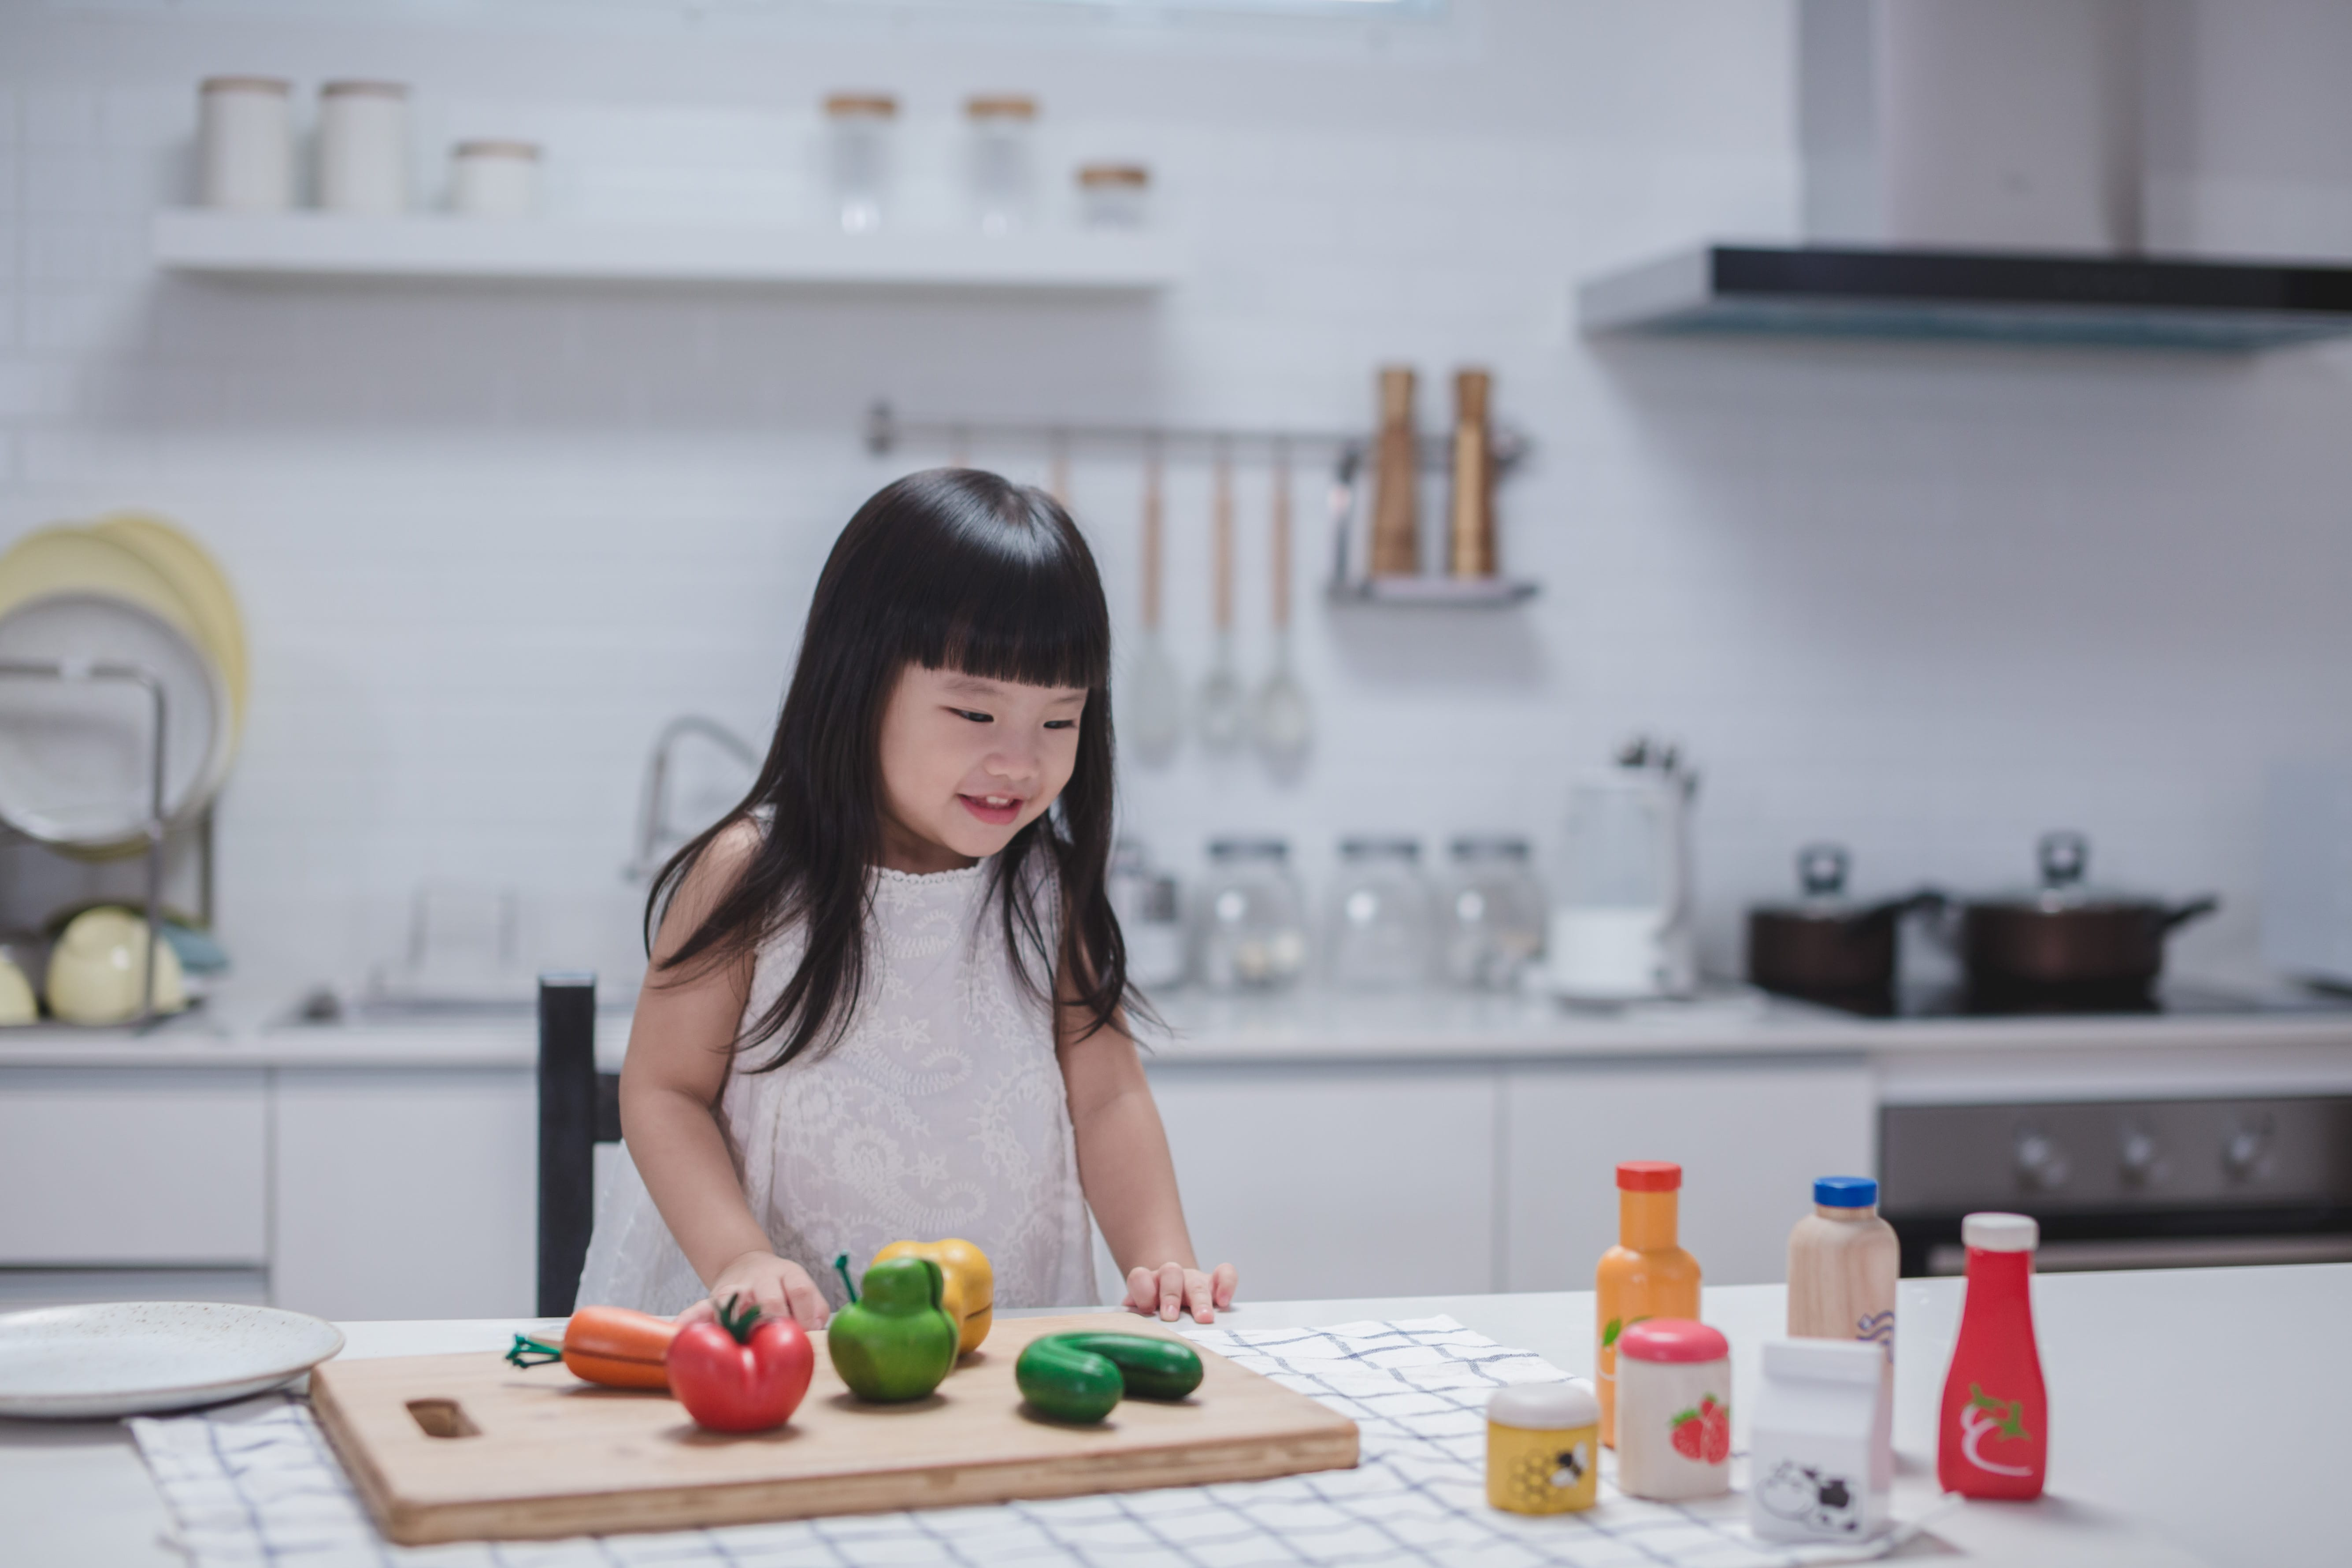 3432_PlanToys_FOOD_and_BEVERAGE_SET_Pretend_Play_Imagination_Language_and_Communications_Social_Fine_Motor_3yrs_Wooden_toys_Education_toys_Safety_Toys_Non-toxic_3.jpg